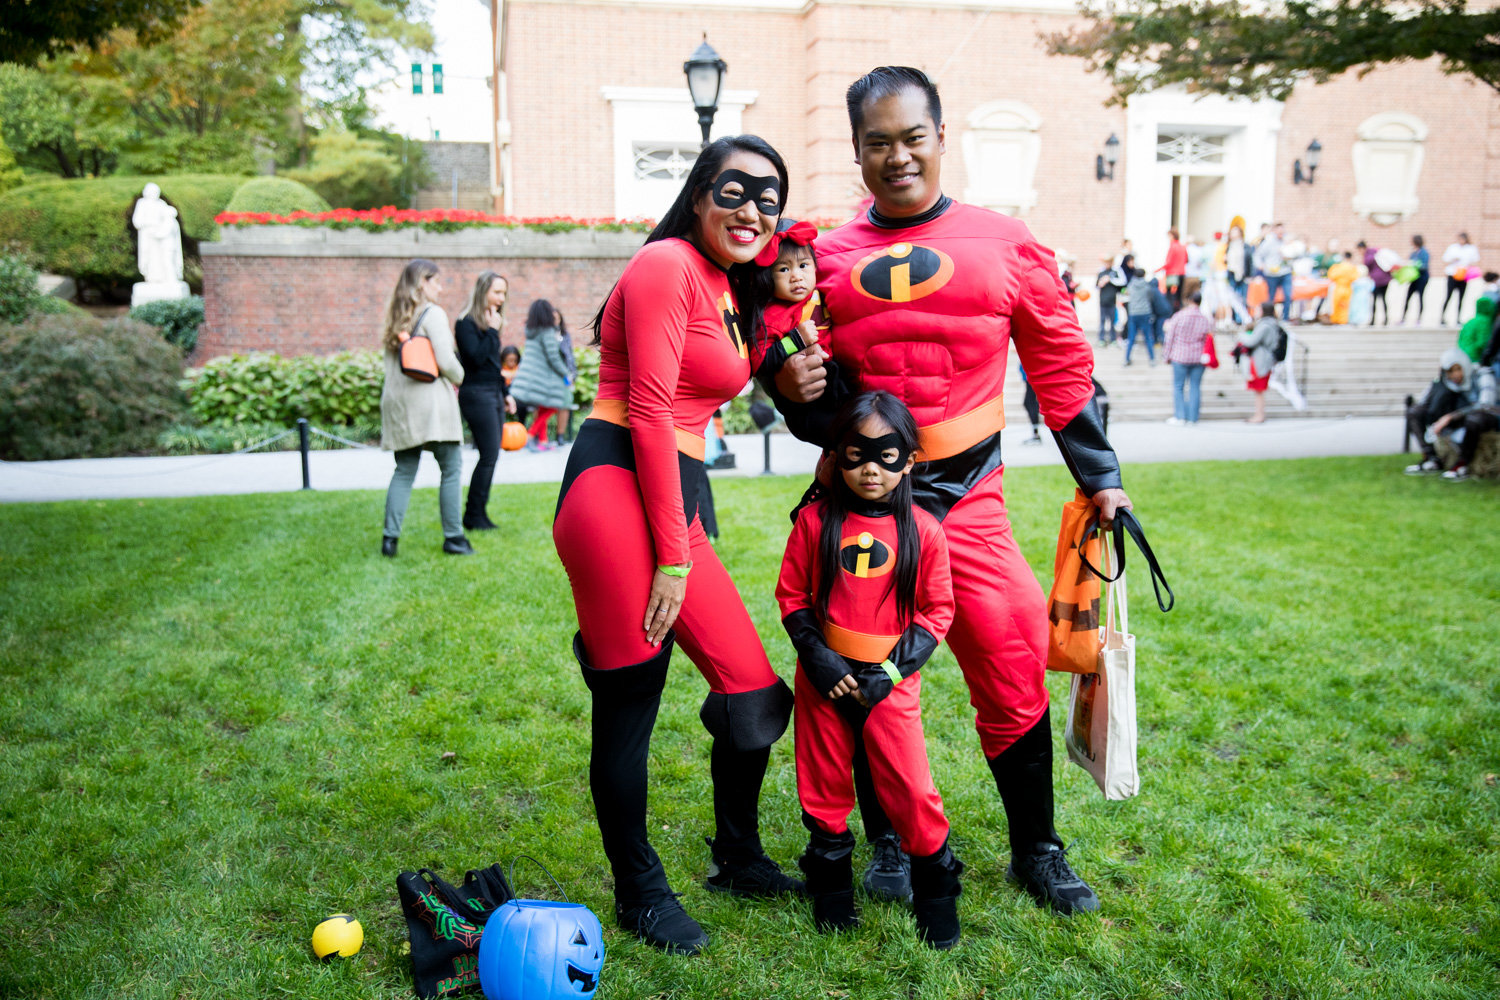 The Viola family decided to coordinate their costumes this year for Manhattan College's Safe Halloween event and go as the Parr family from the Pixar film 'The Incredibles.'